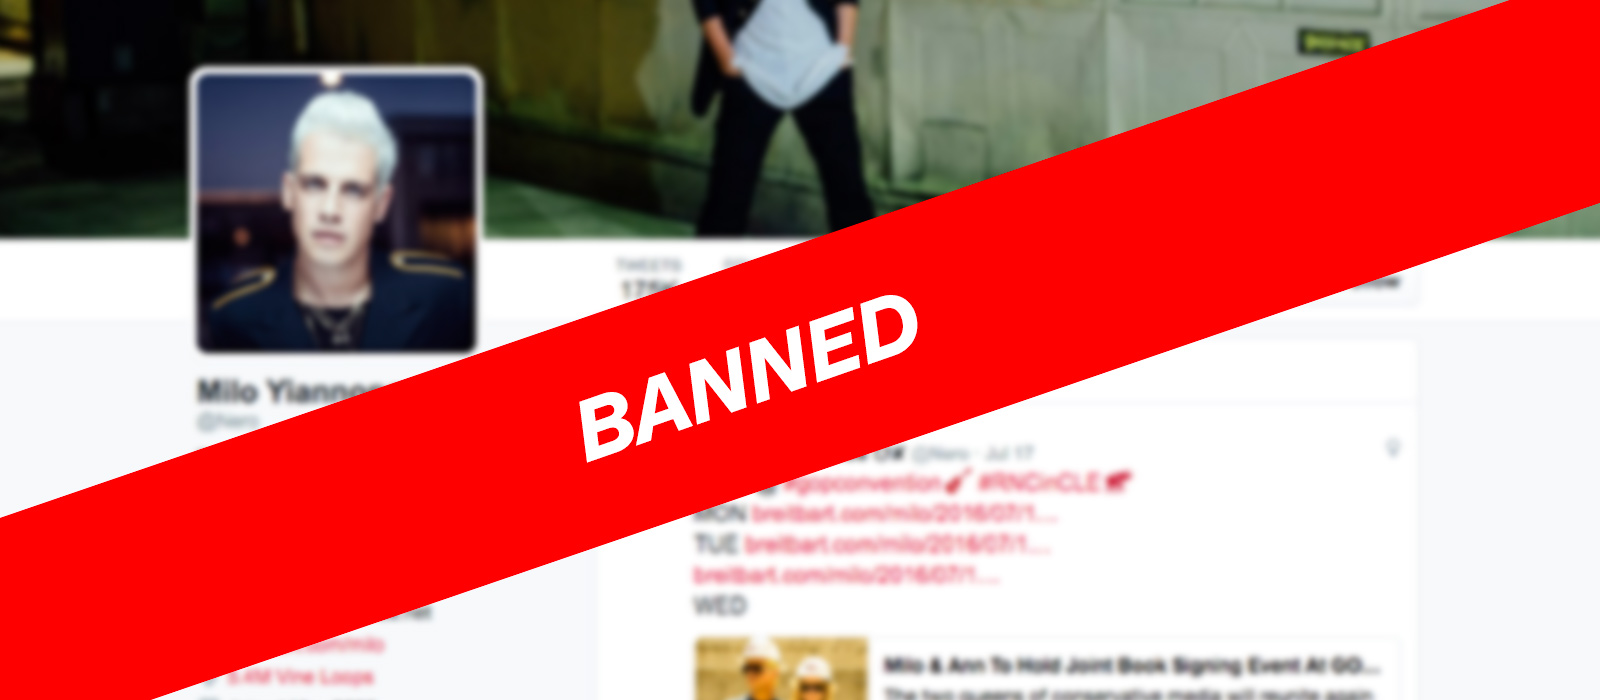 Twitter gives Milo Yiannopoulos the axe, bans him permanently